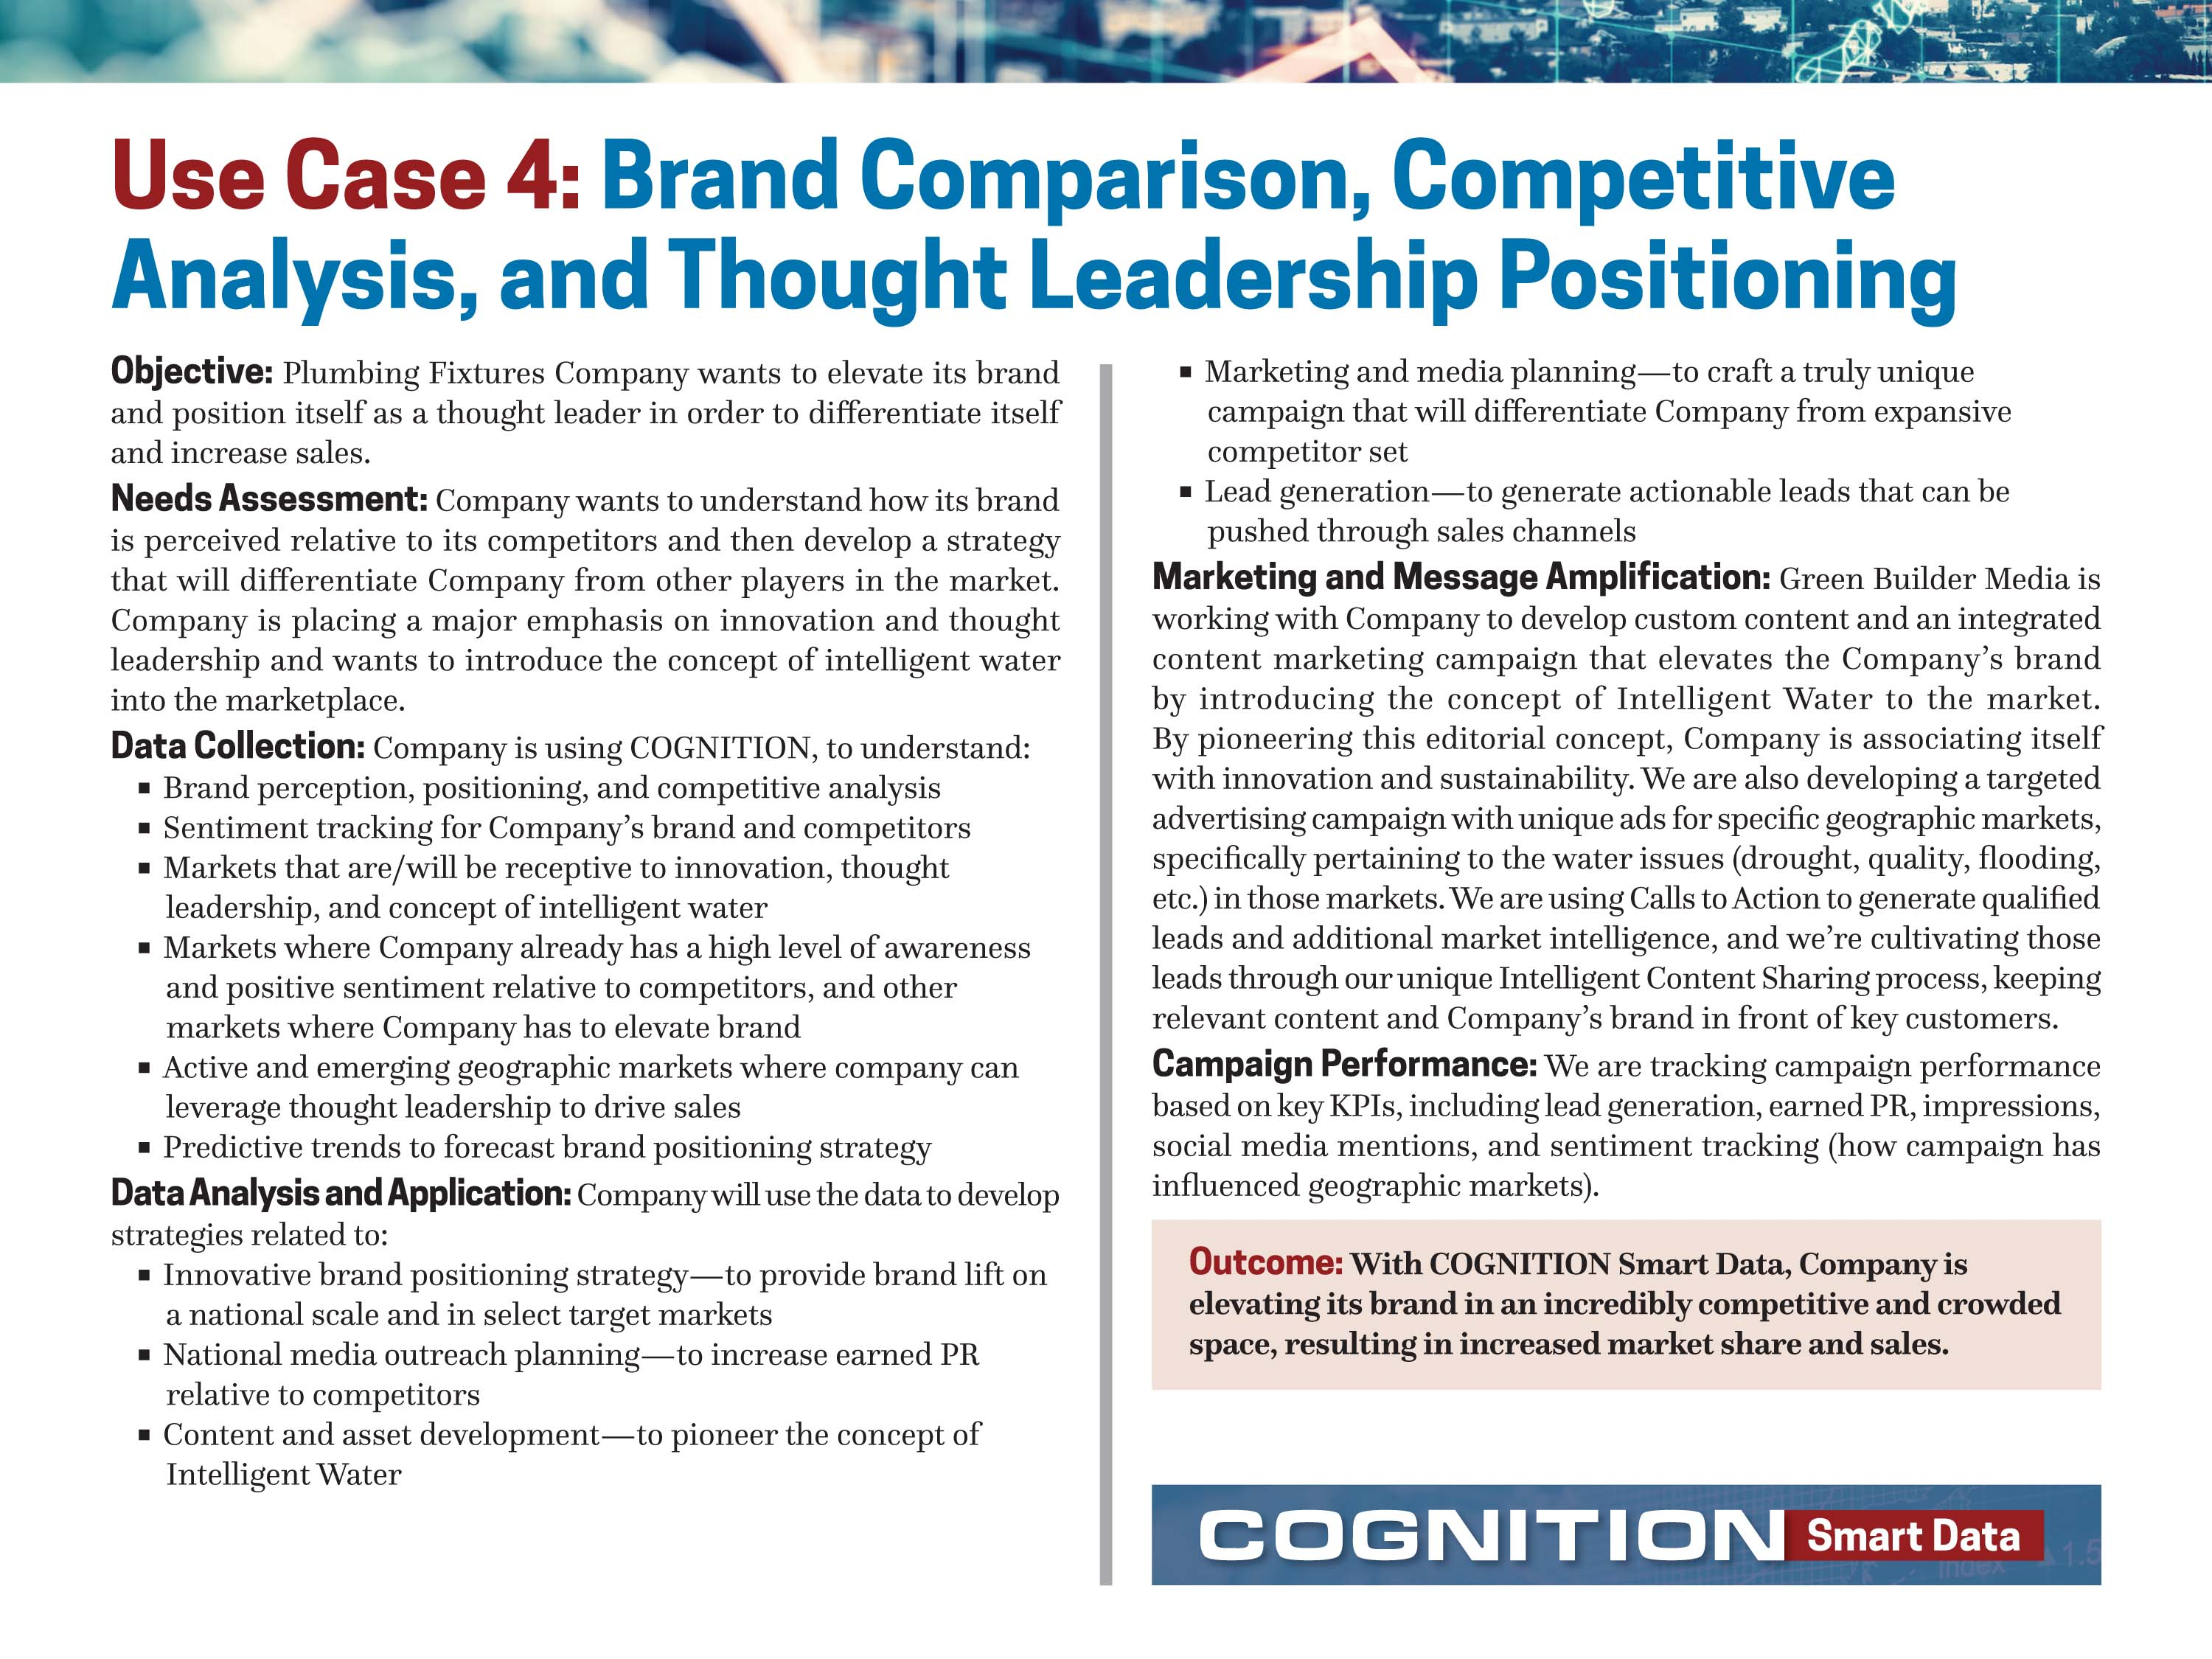 COGNITION Use Cases-4.jpg